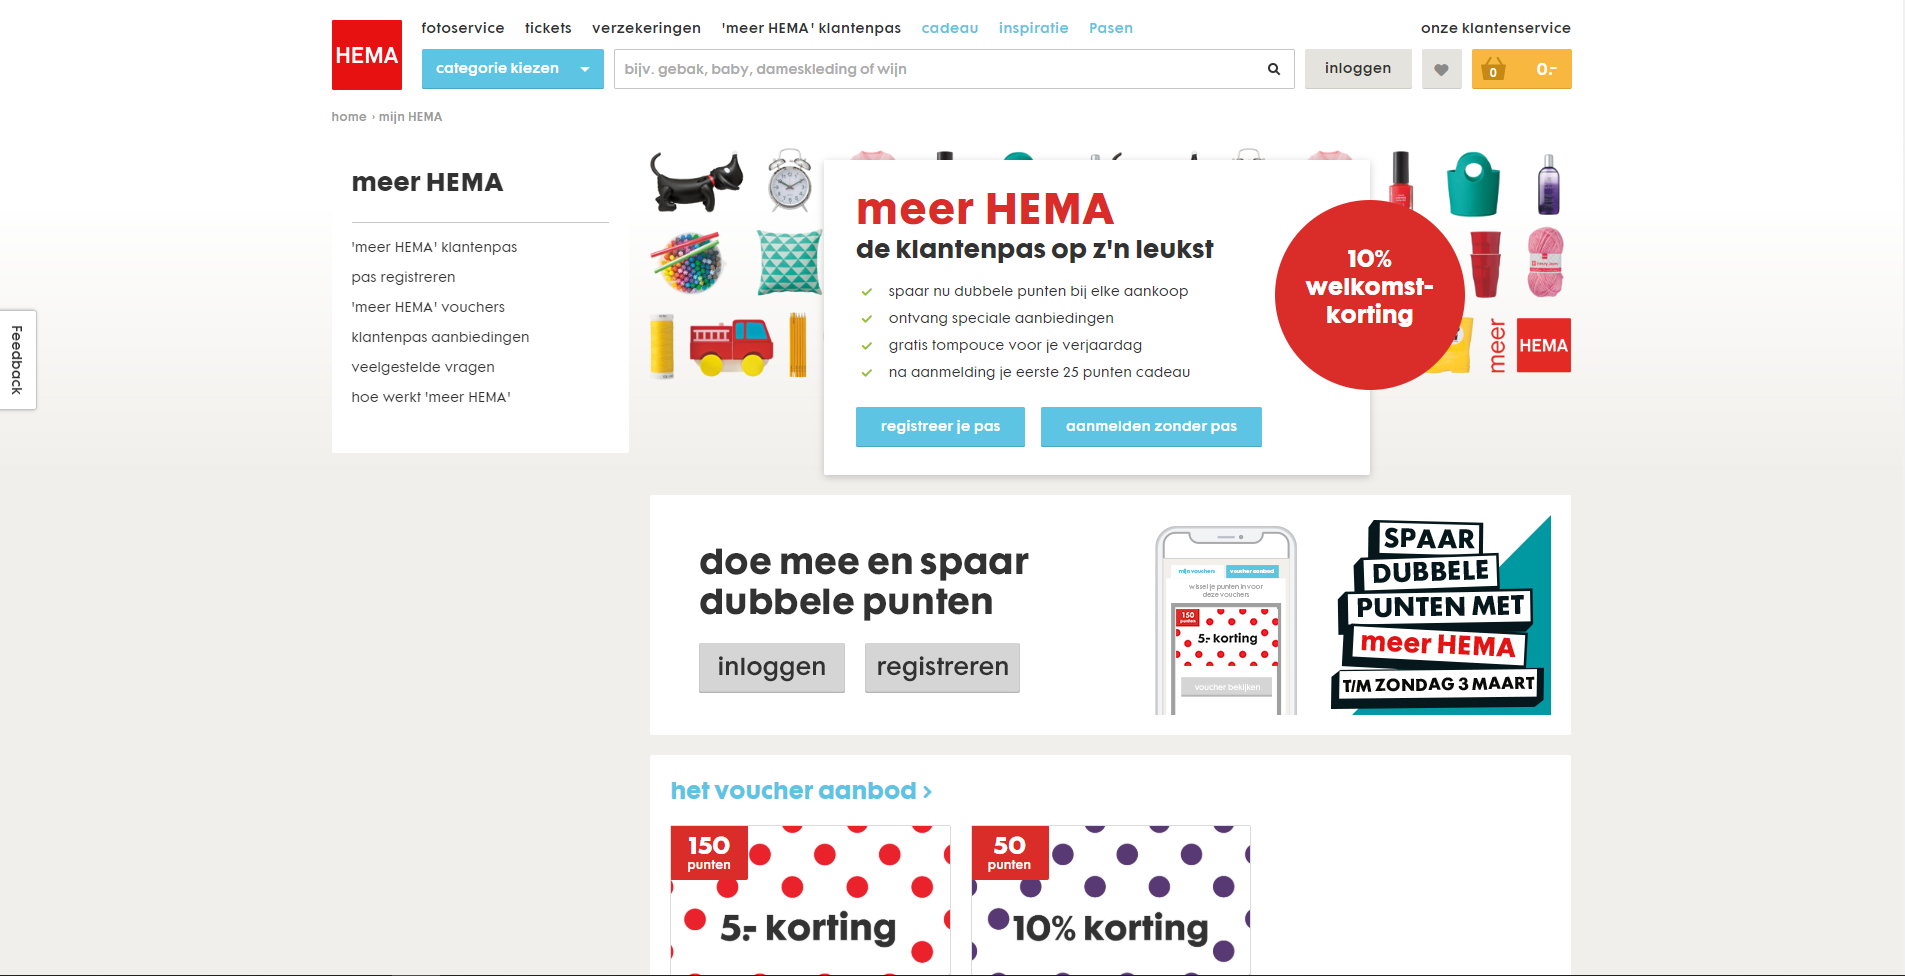 Screenshot of HEMA website